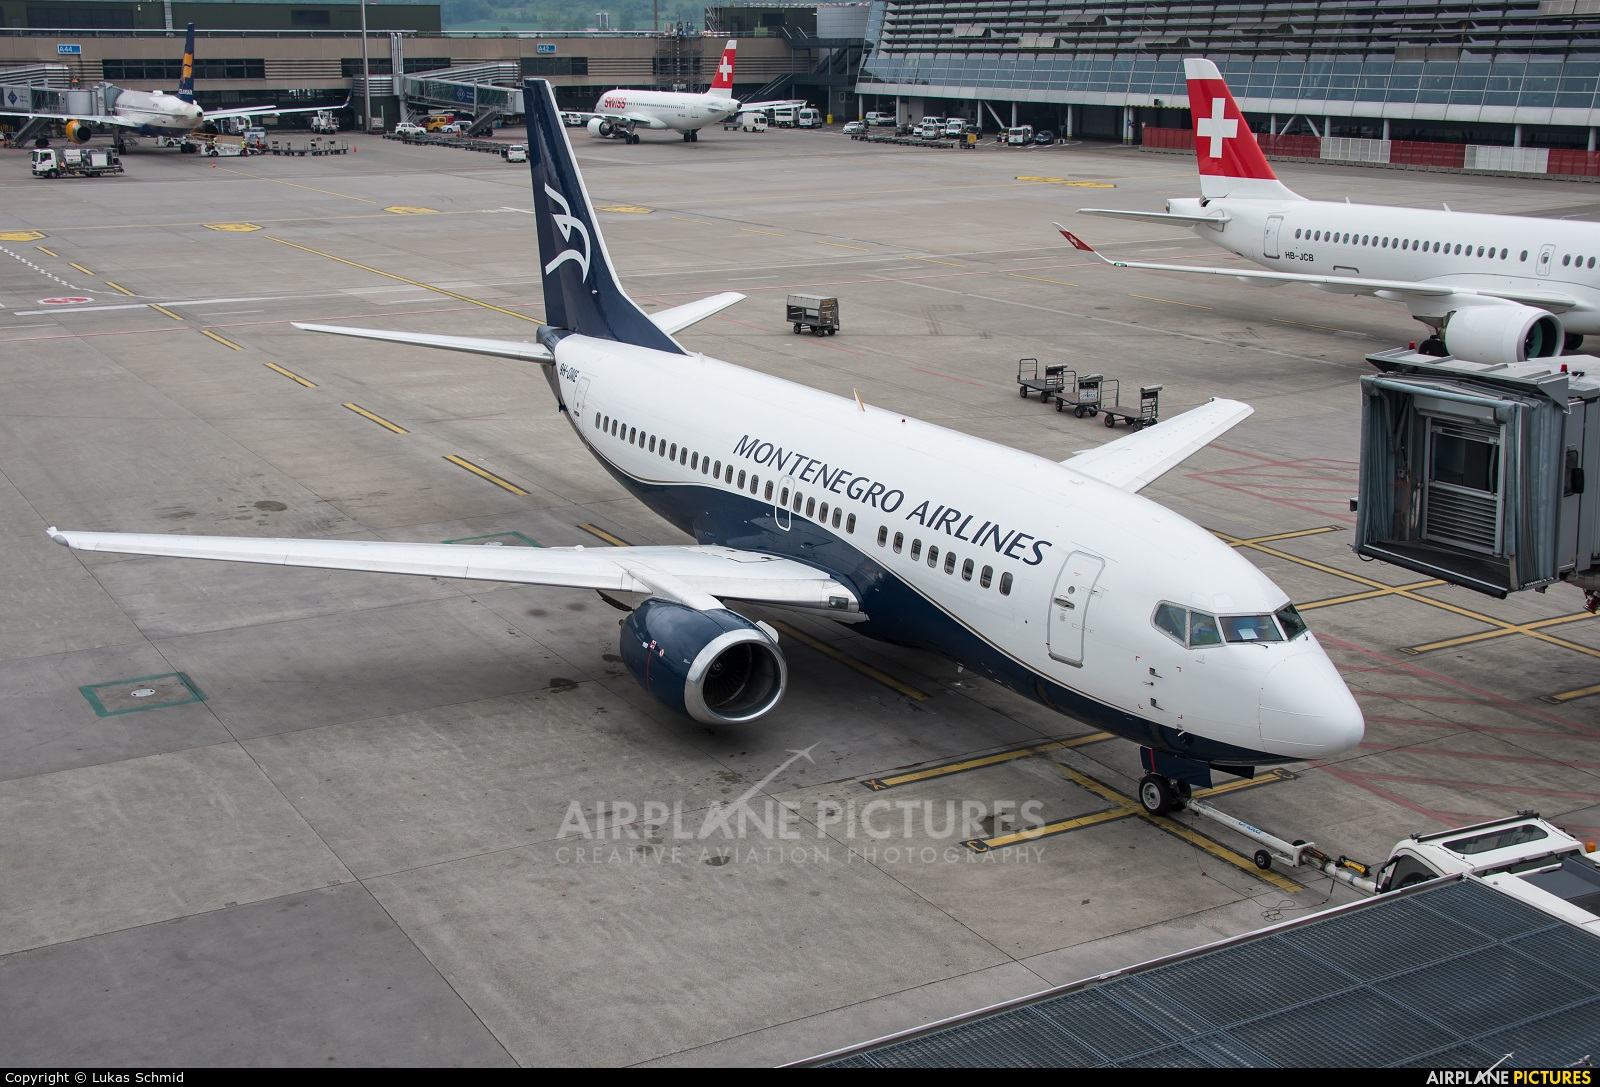 Montenegro Airlines 9H-OME aircraft at Zurich